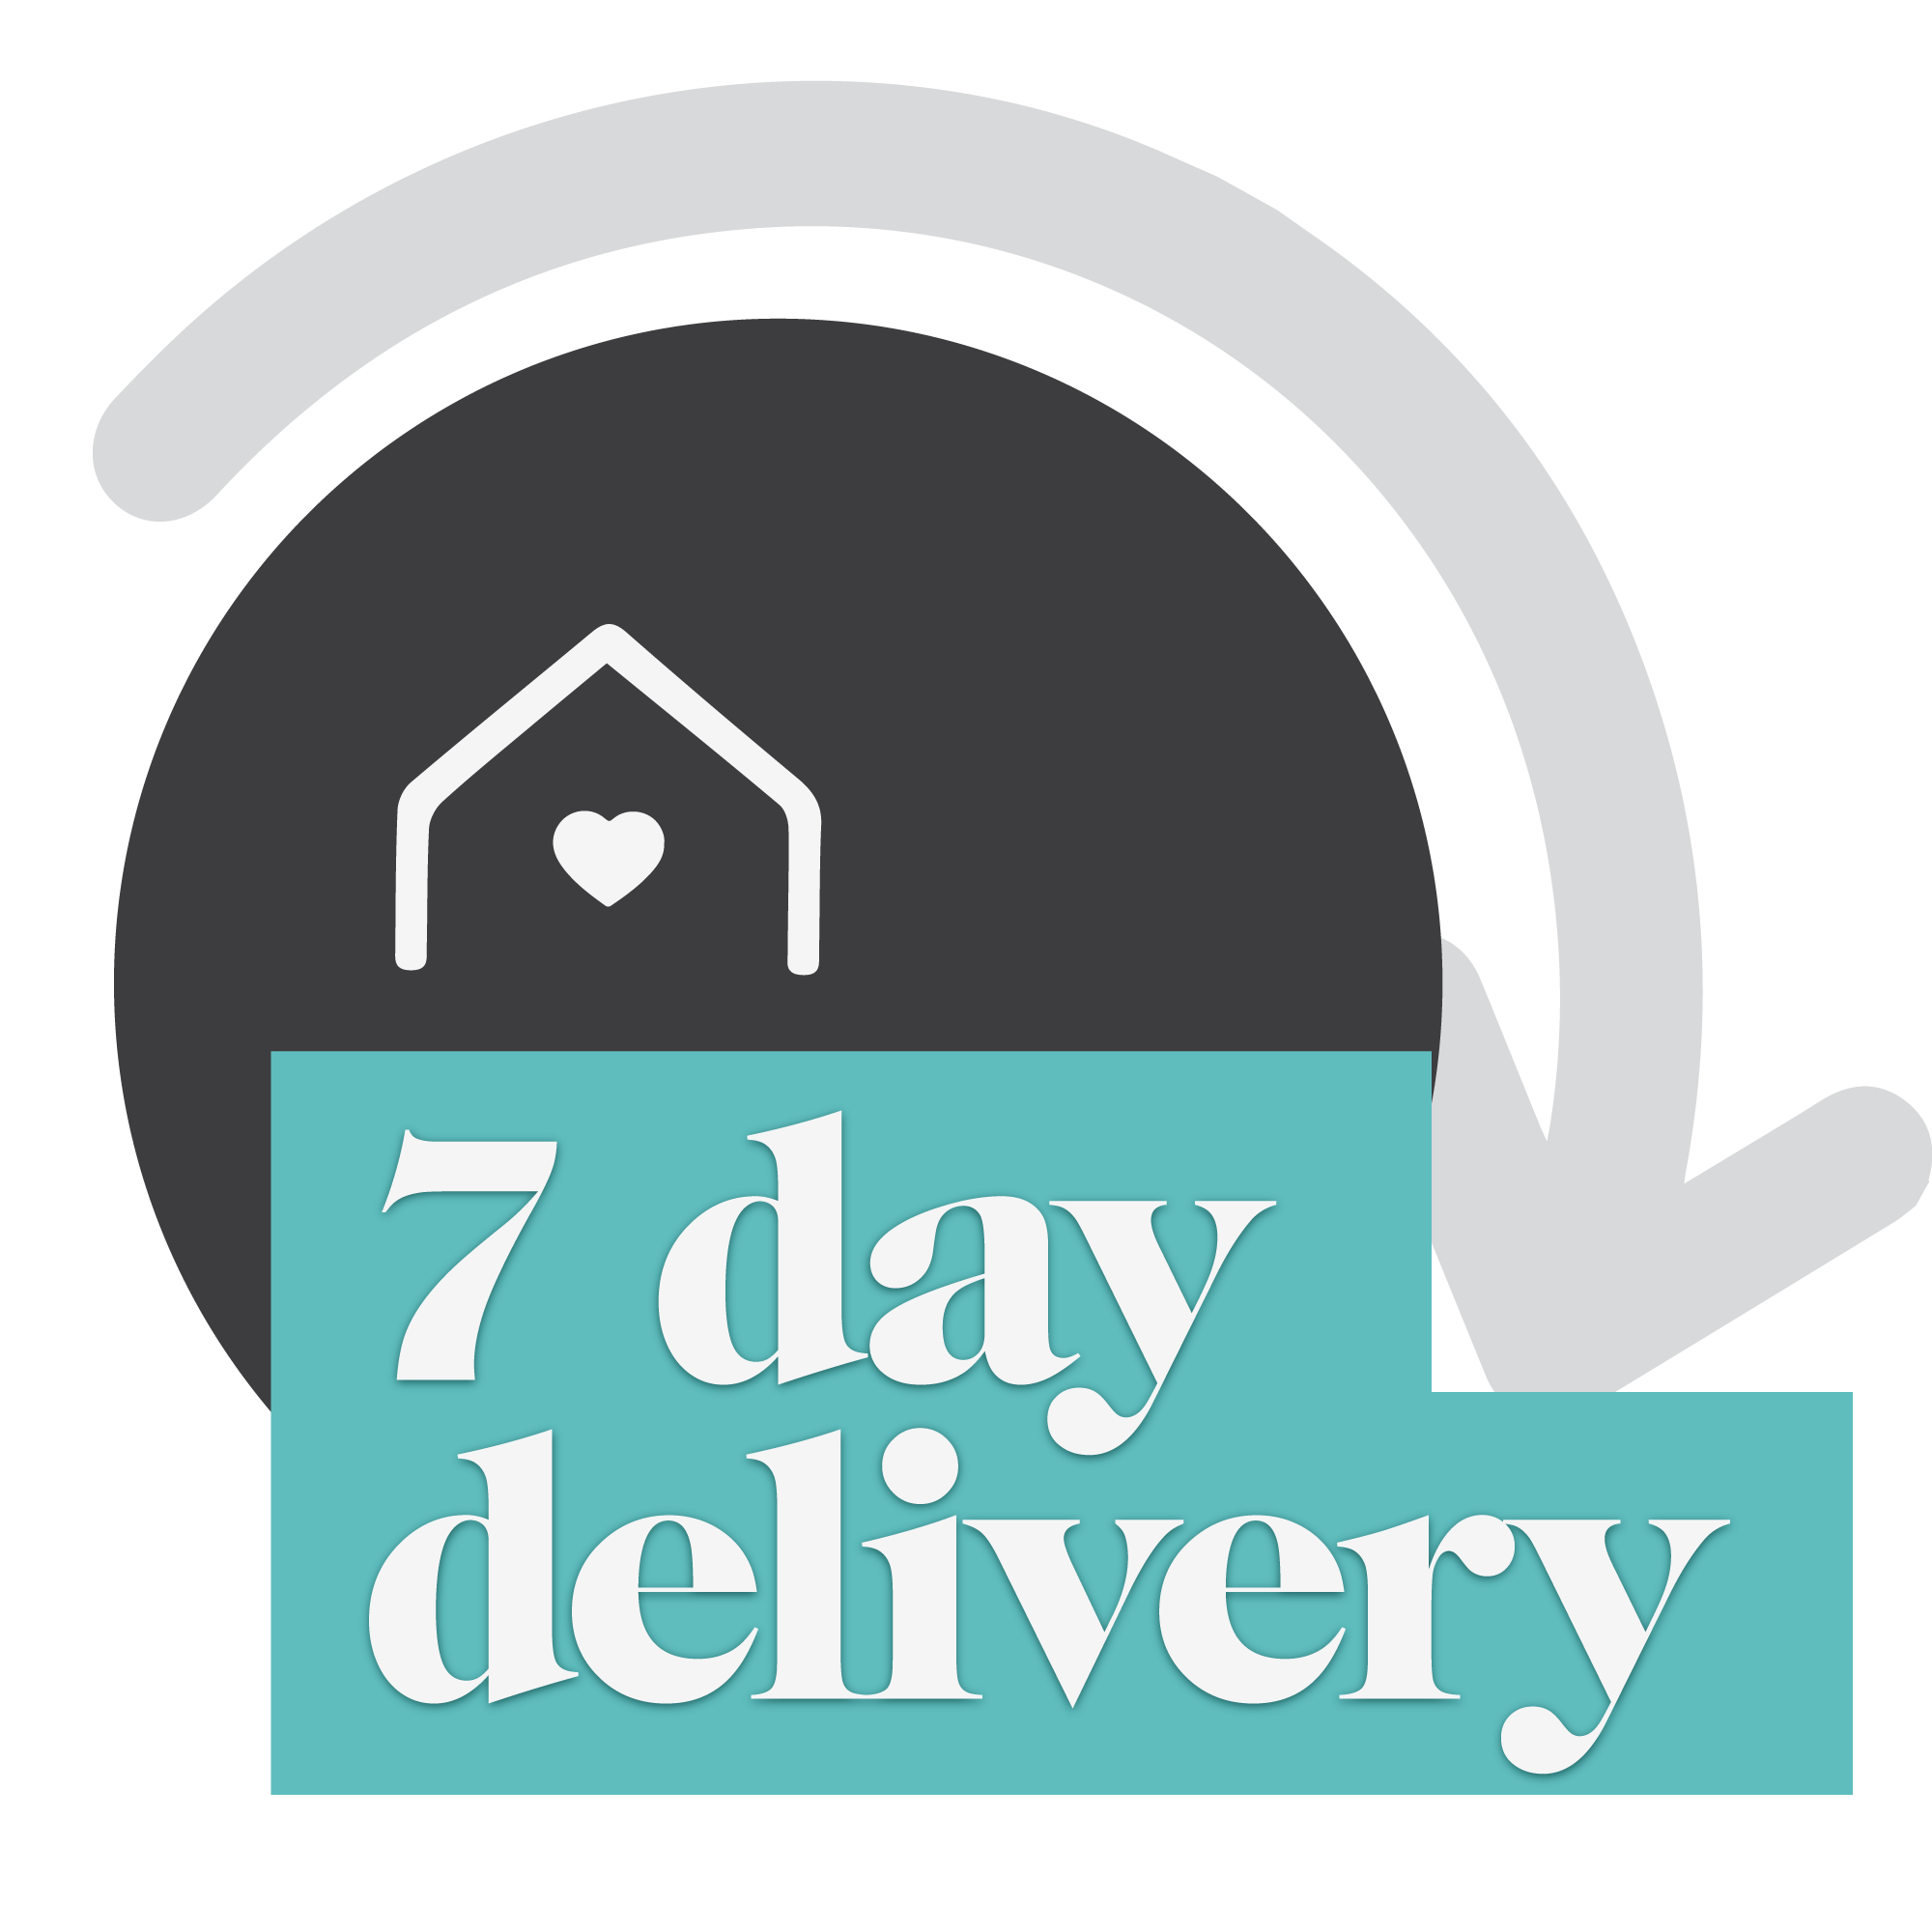 7 Day Delivery